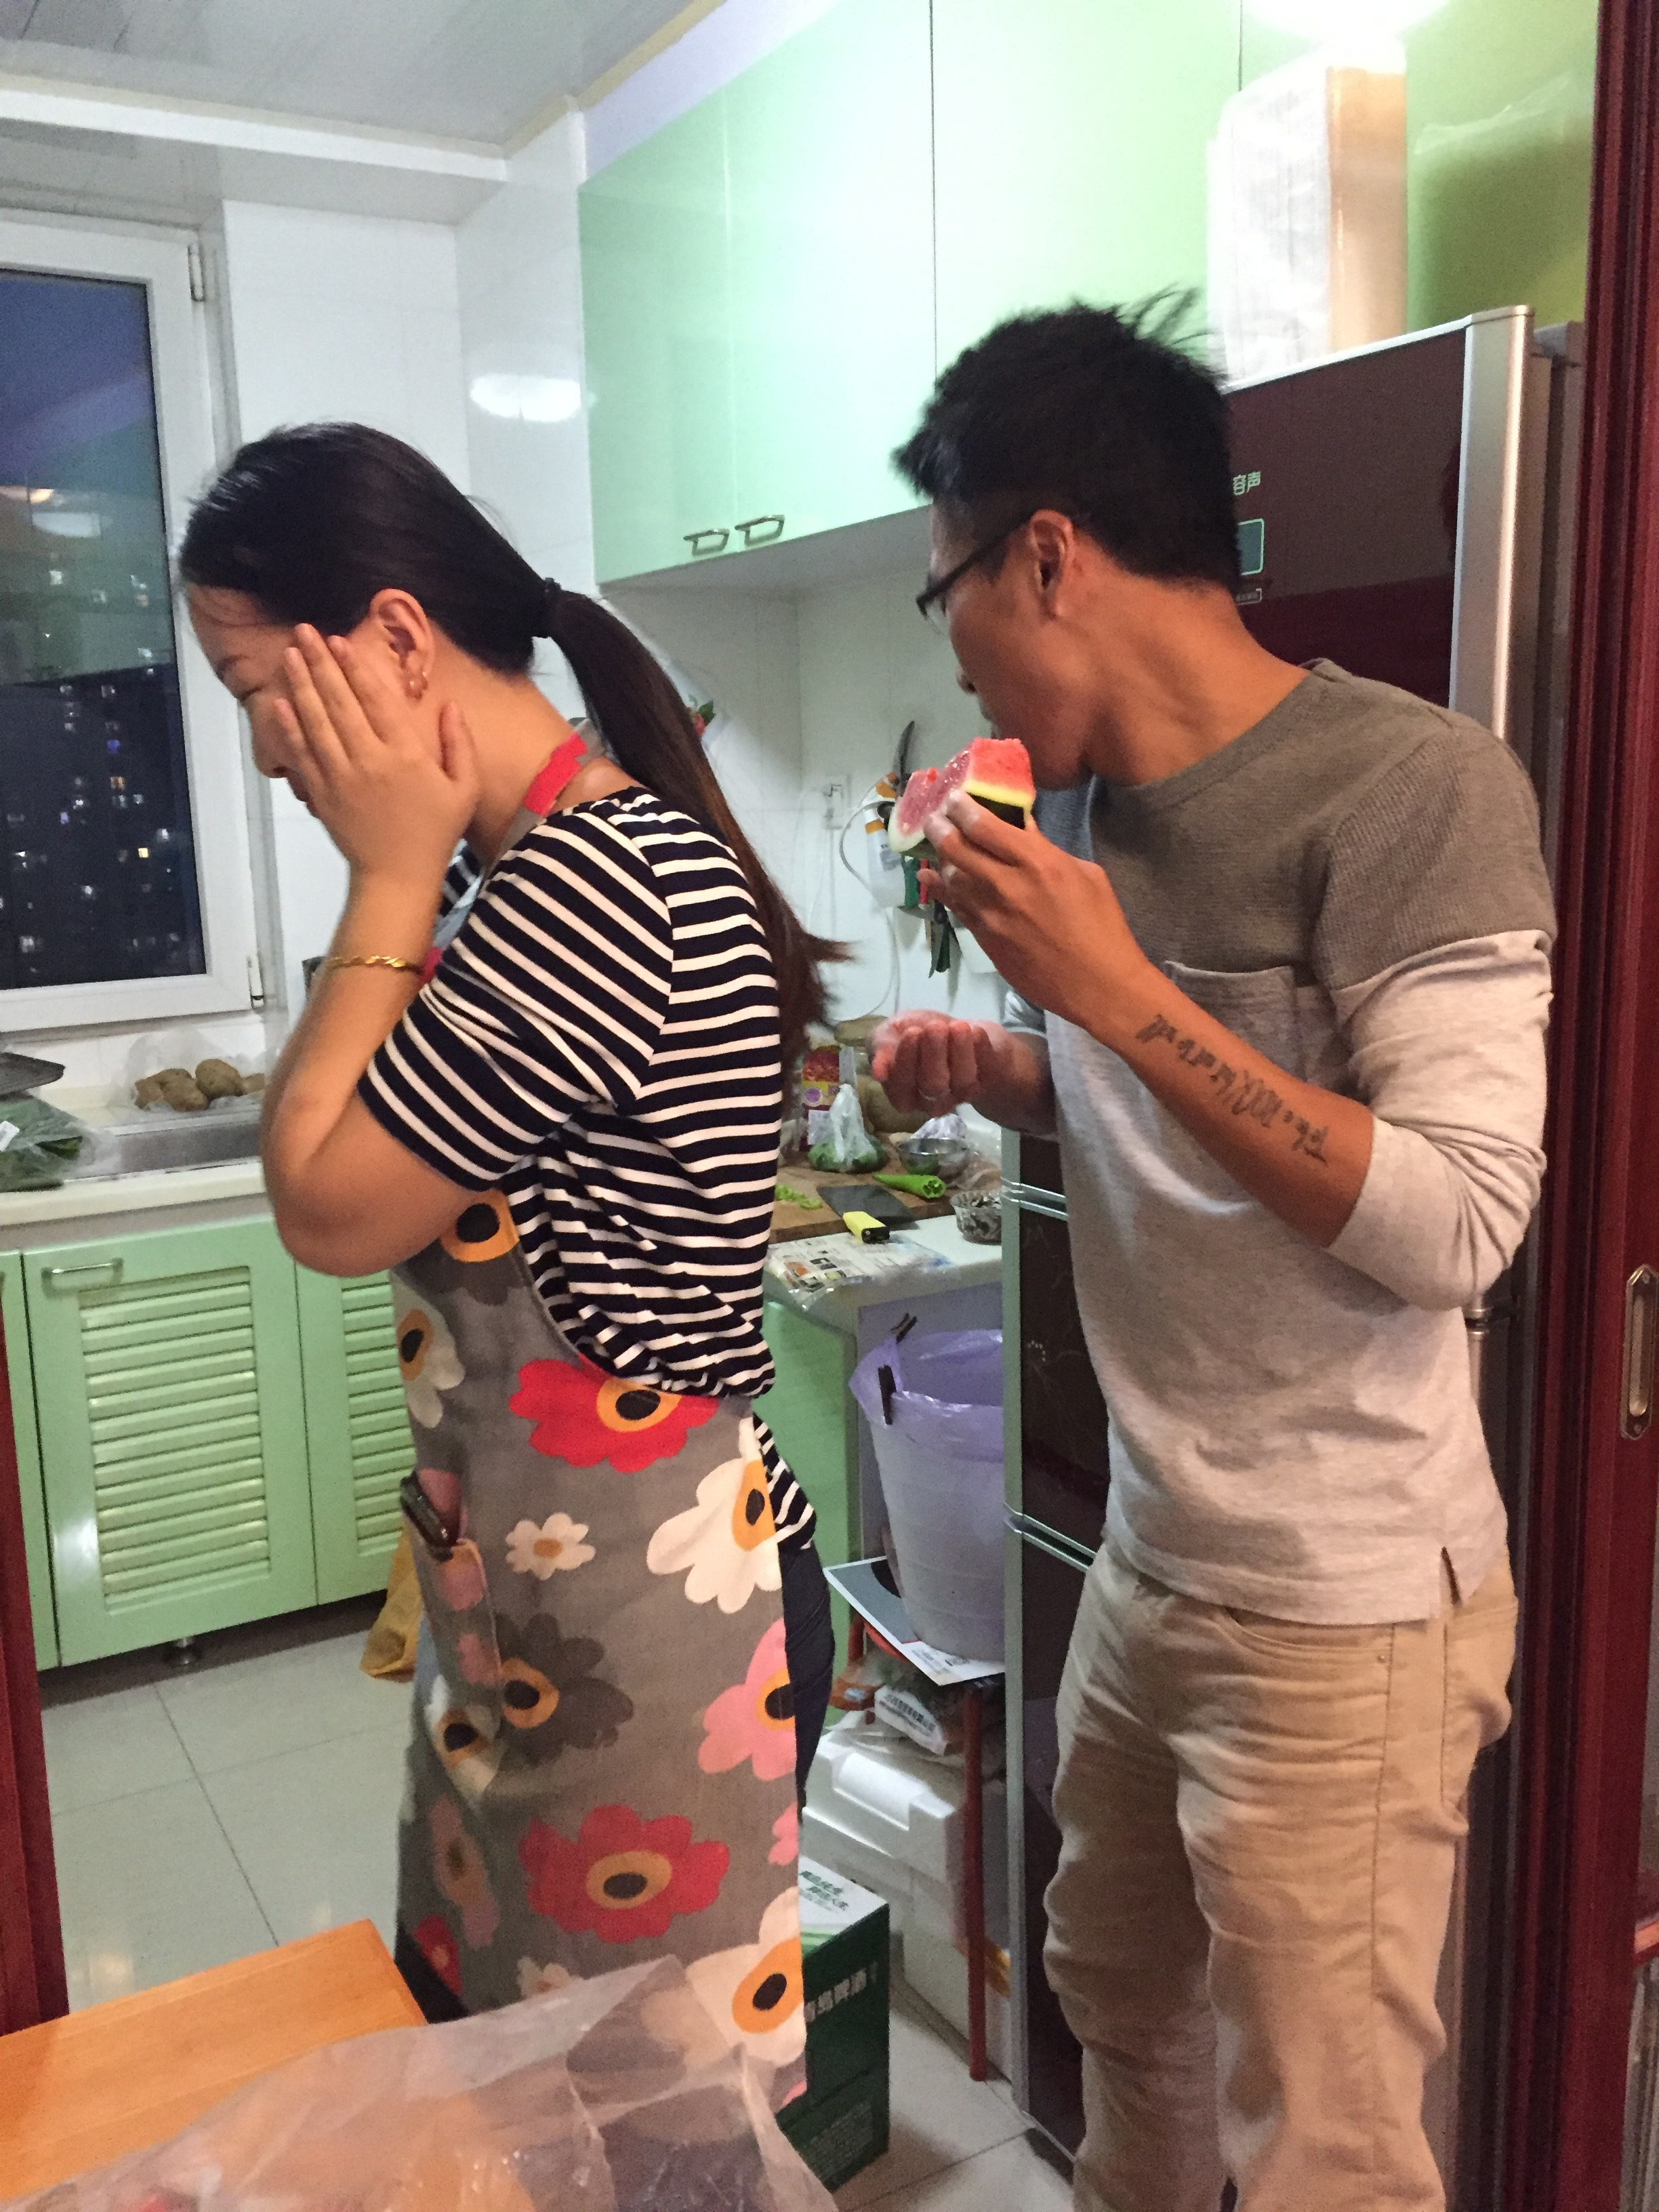 Meeting this new couple in Vietnam and discovering she lives in Dalian! And her being so sweet as to treat us to her fabulous cooking not once but twice.